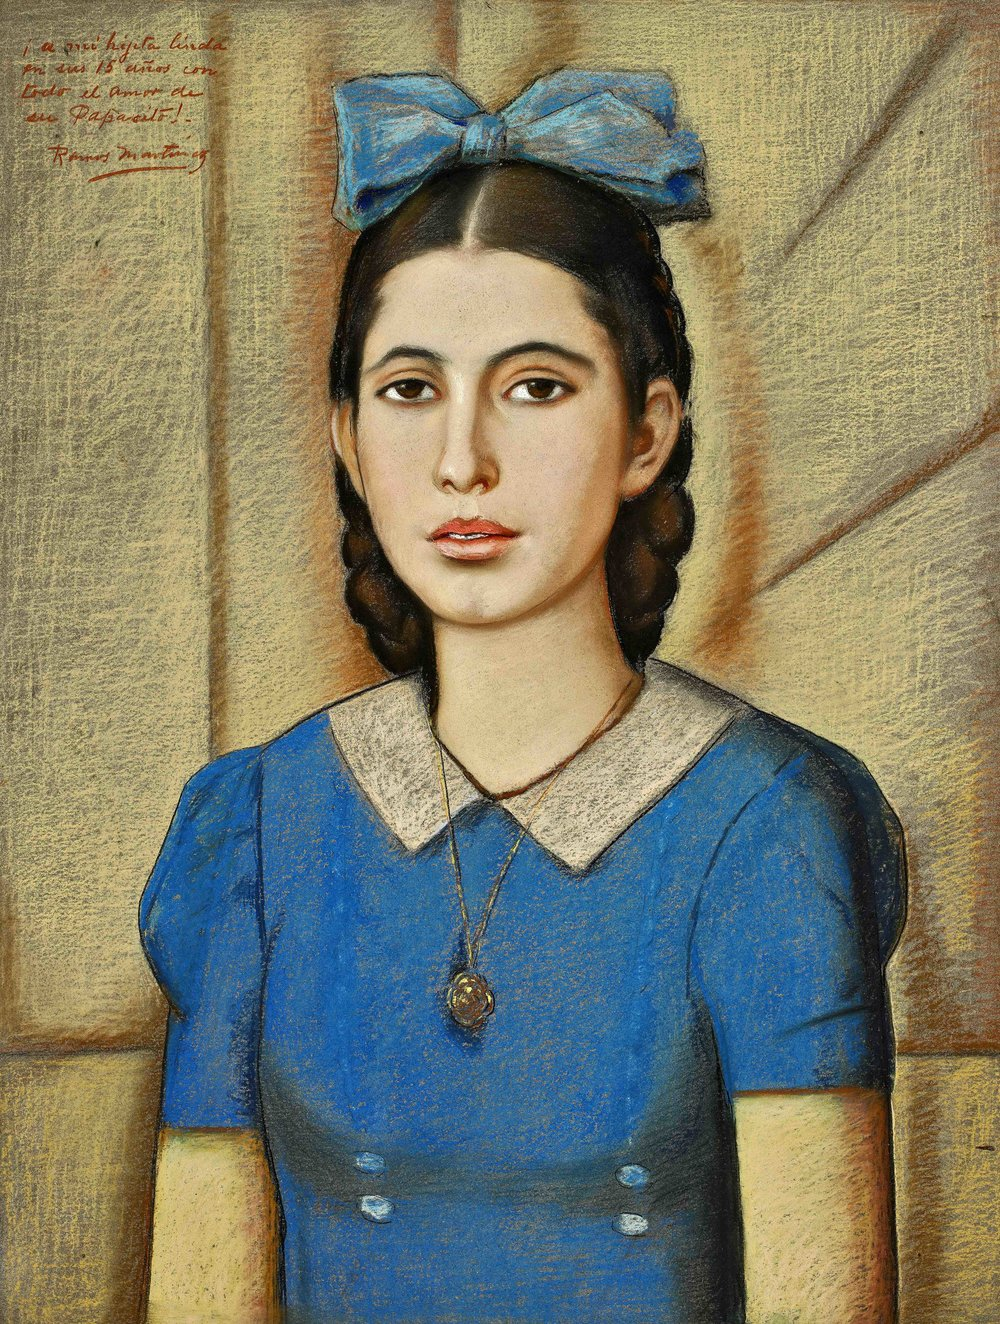 Retrato de María Años Quince / Portrait of Maria at Fifteen  1943 pastel and charcoal on board / pintura al pastel y carbón sobre tabla 26.5 x 19.5 inches; 67.3 x 49.5 centímetros